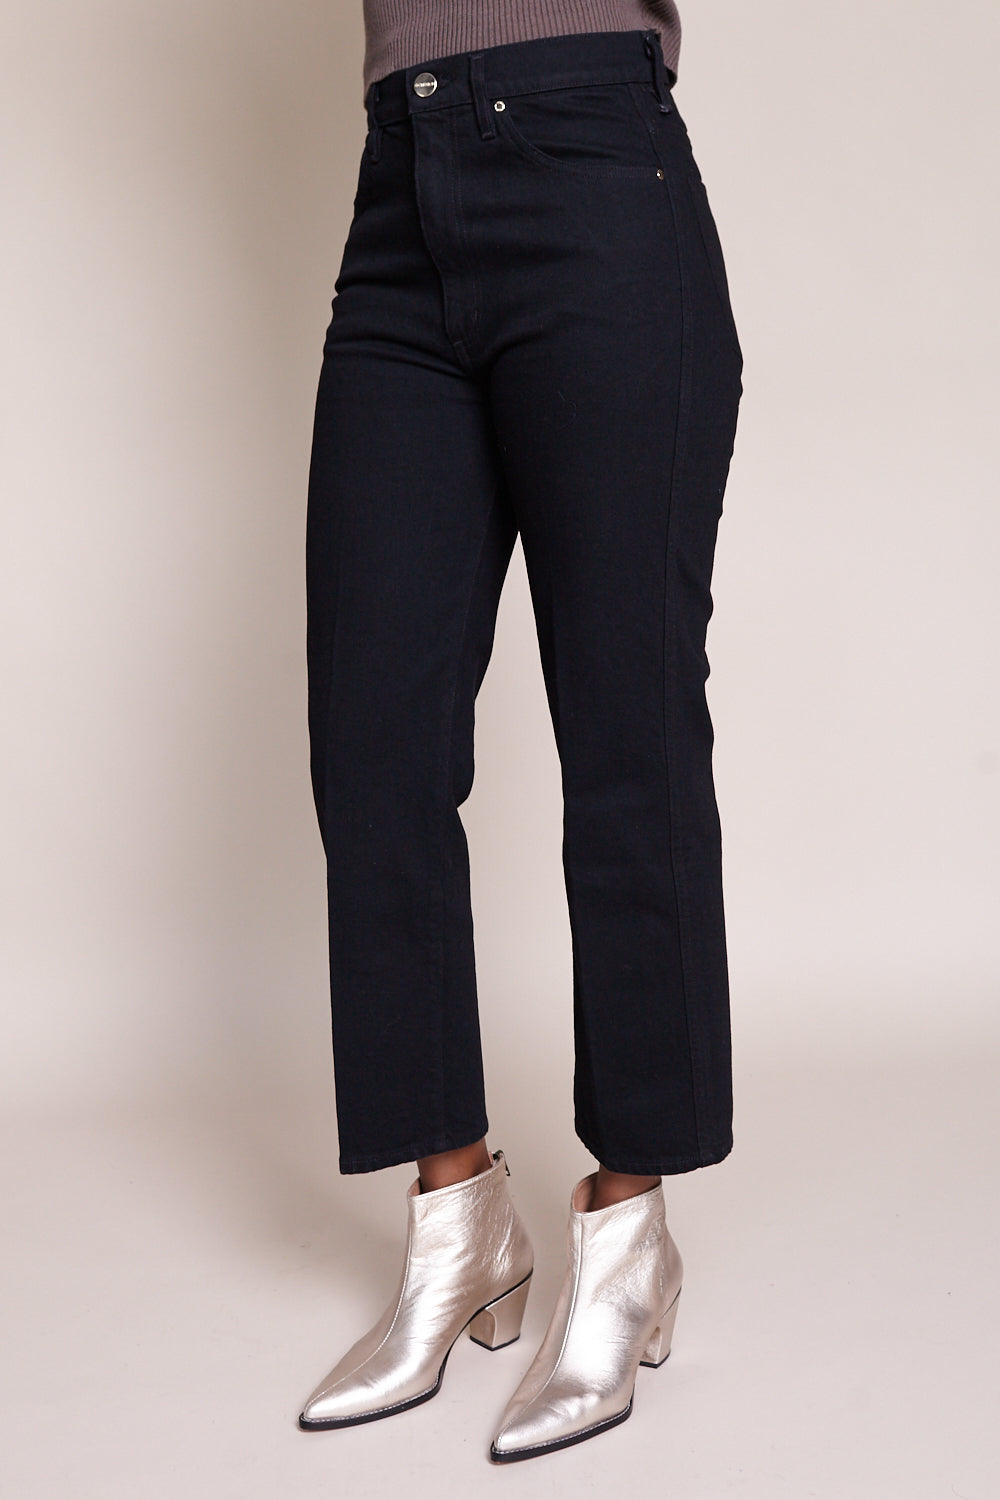 Goldsign Cropped A Jean in Black Rinse - Vert & Vogue